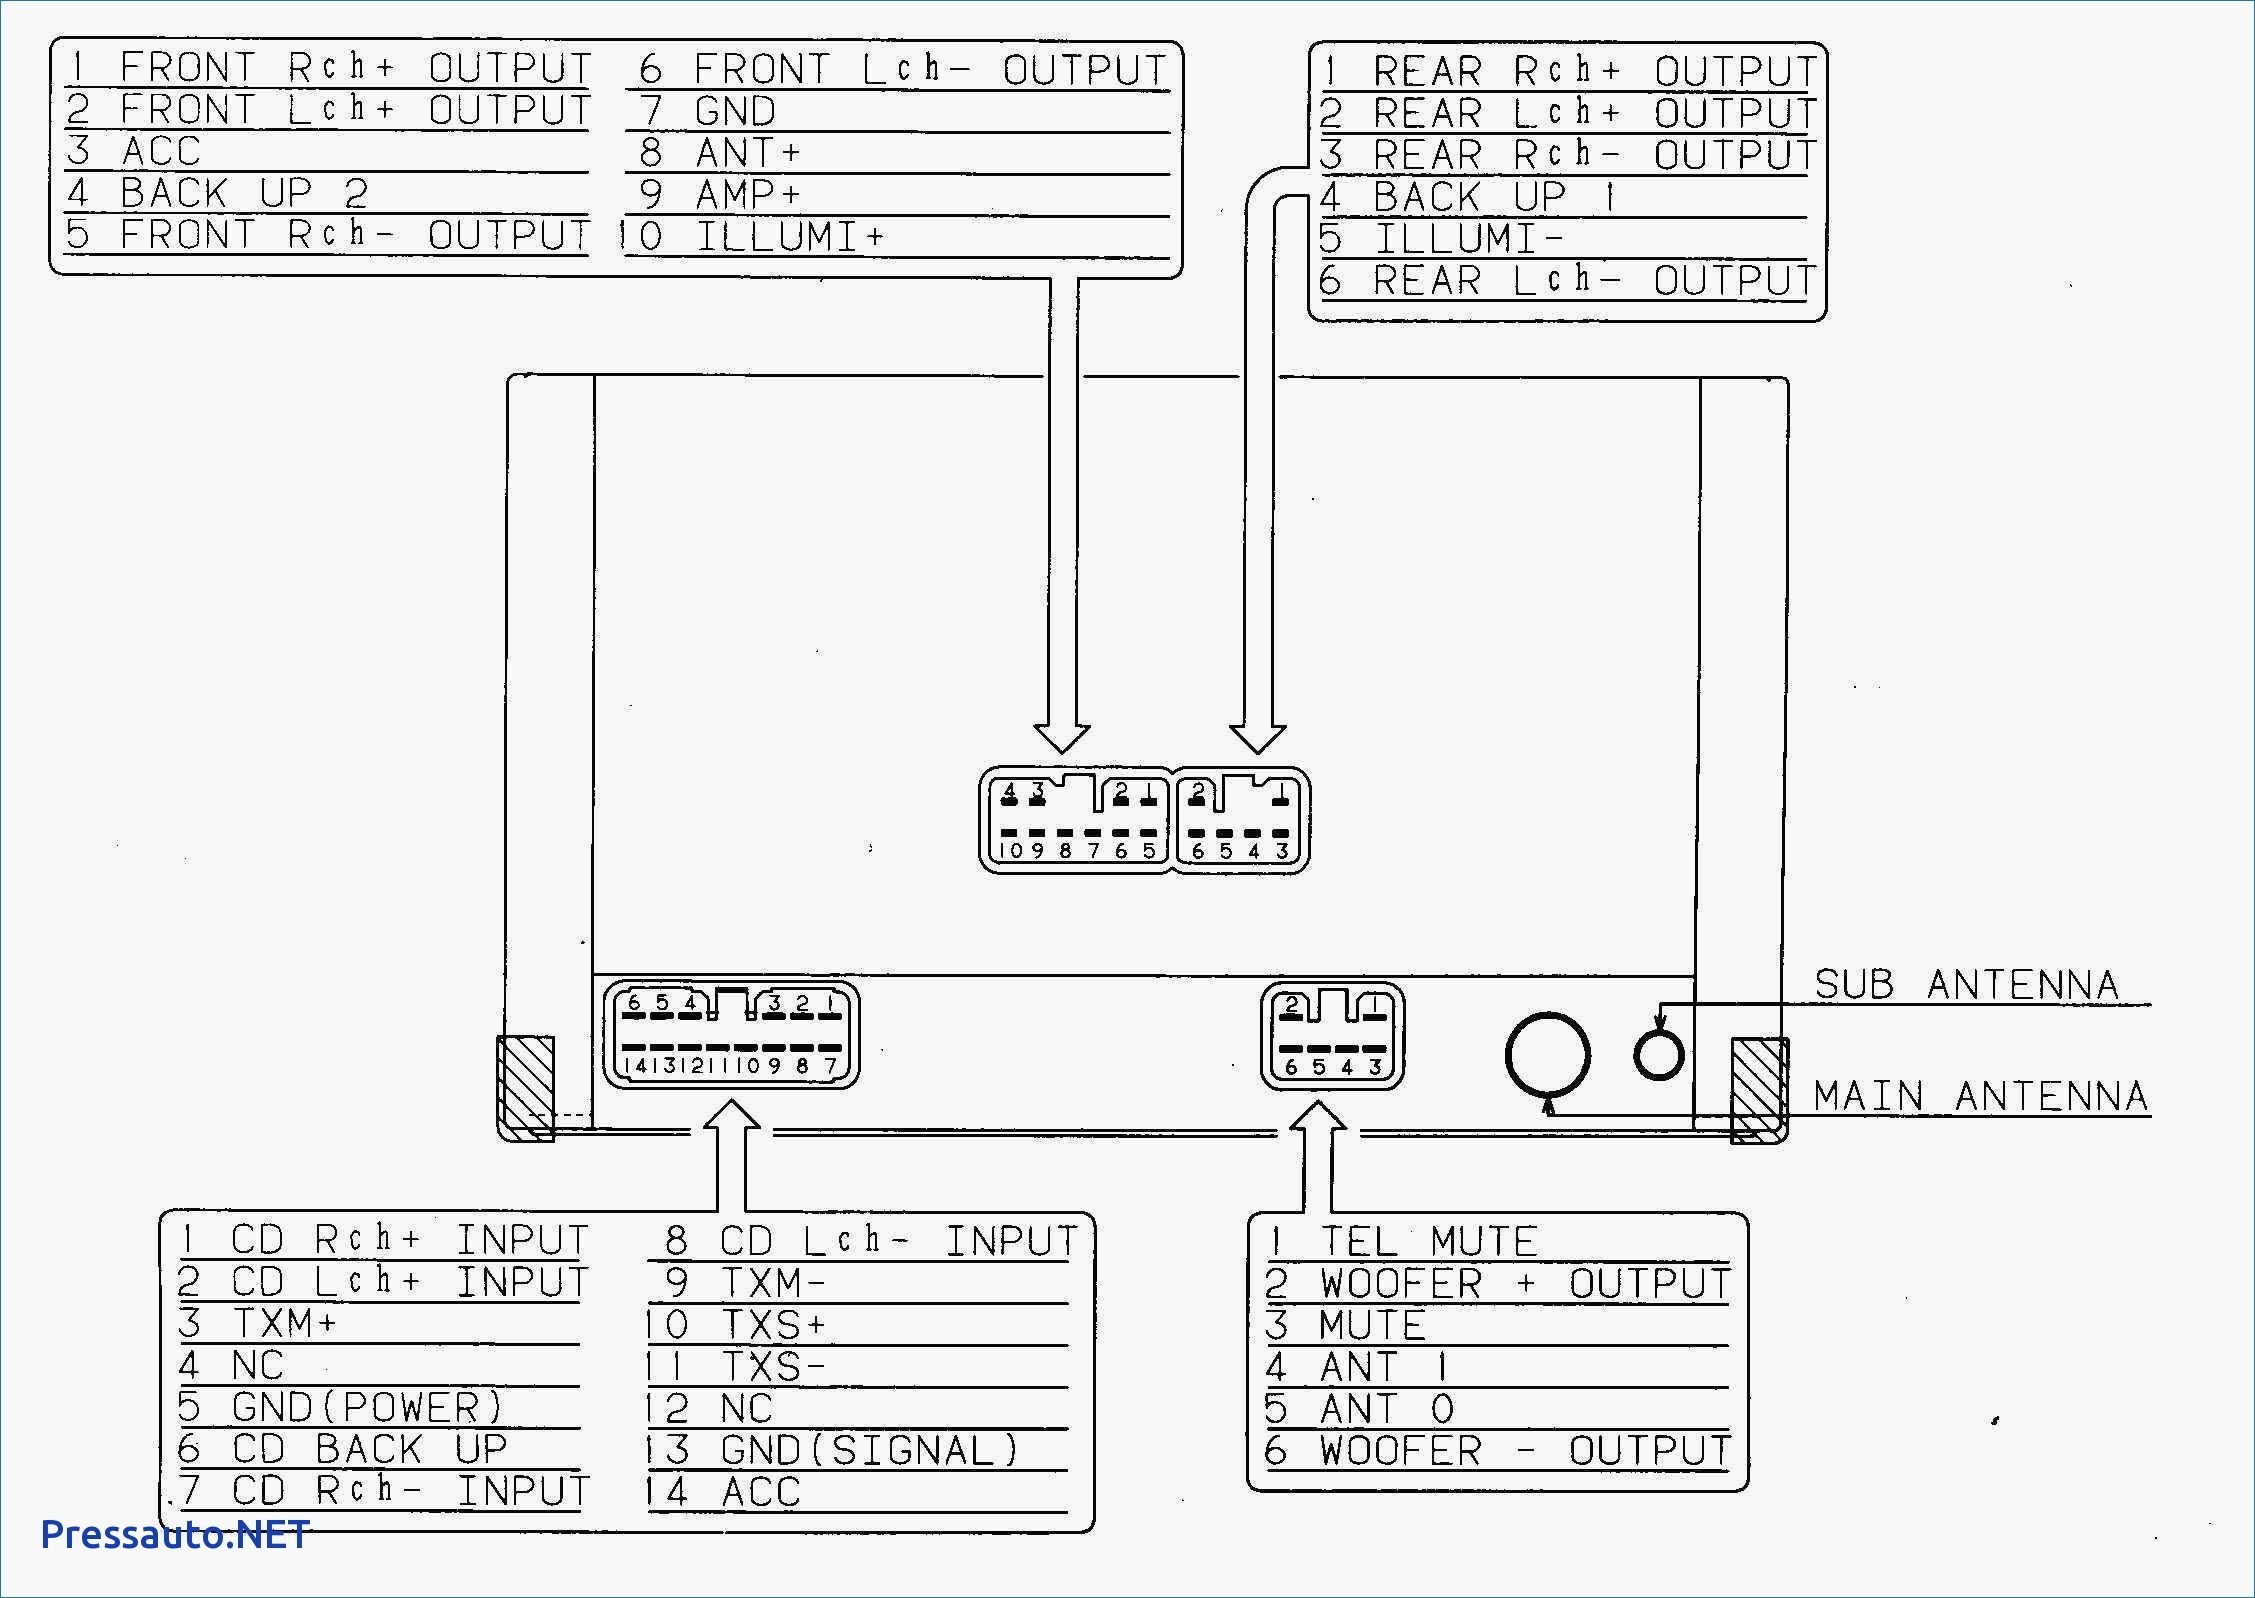 Wiring Diagram for Clarion Car Stereo Best Speaker Wiring Diagram Diagram Of Wiring Diagram for Clarion Car Stereo